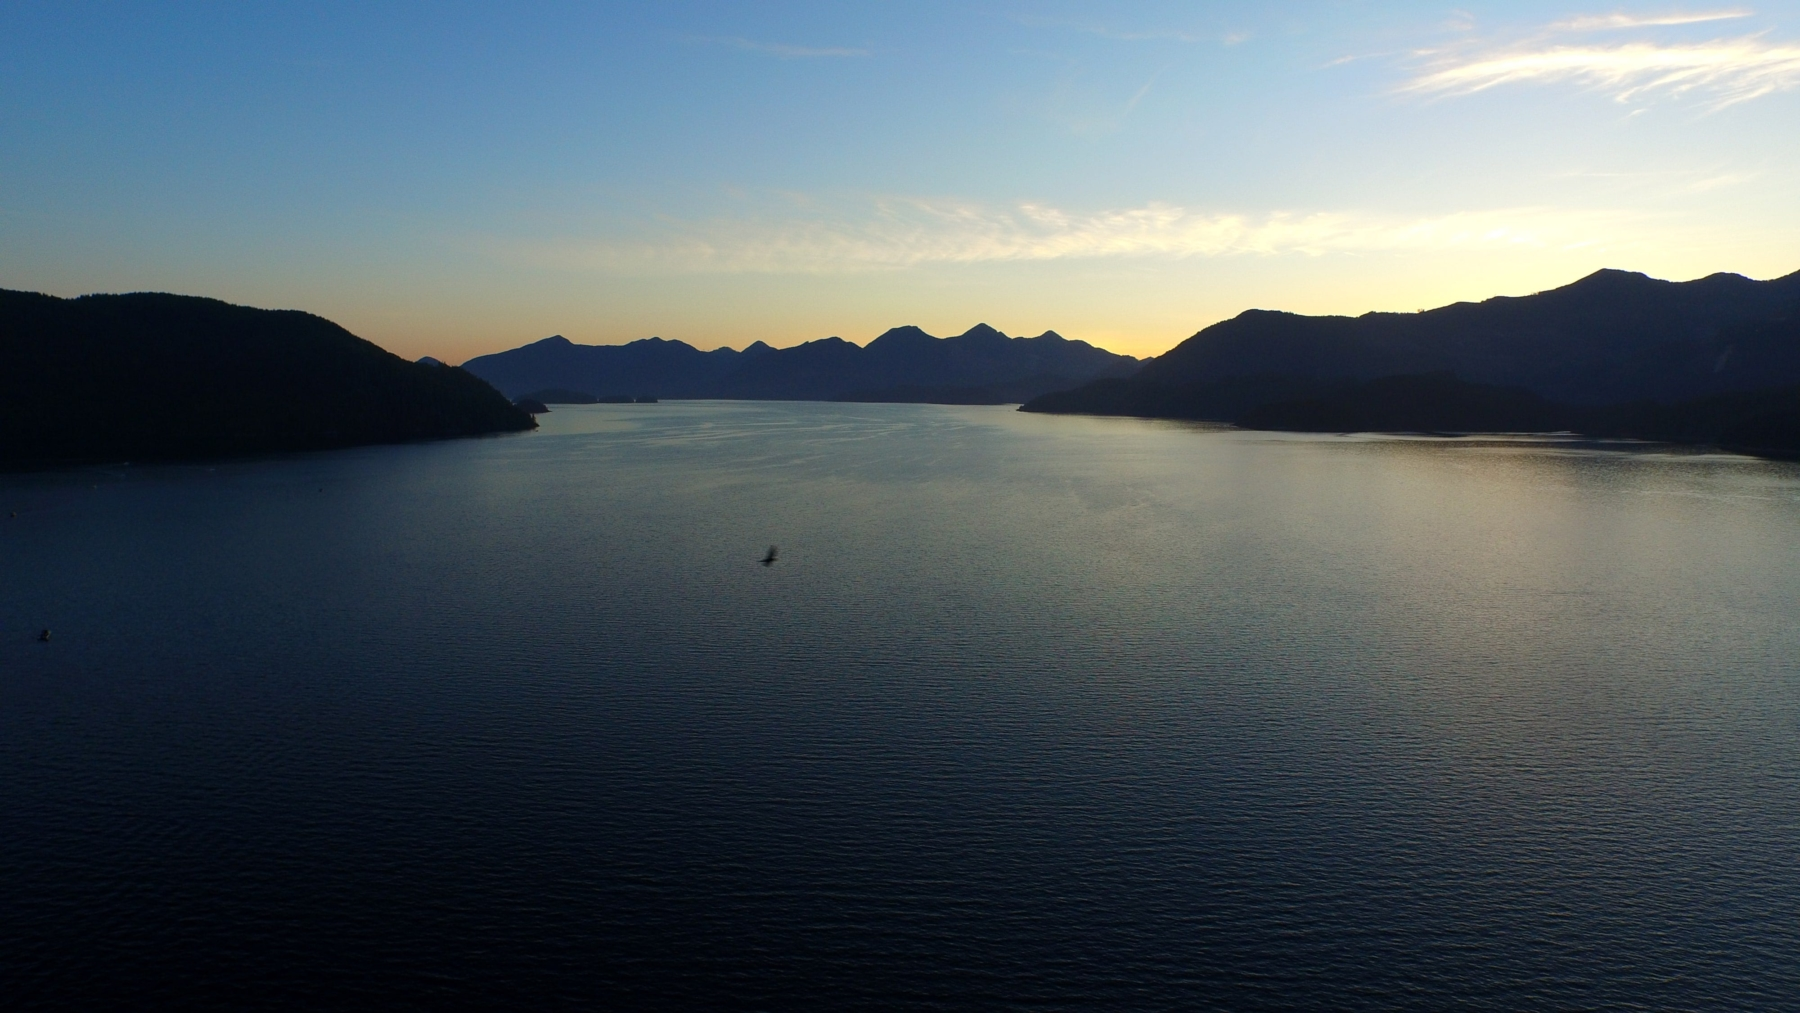 Nootka Sound surrounded by mountains at sunset.